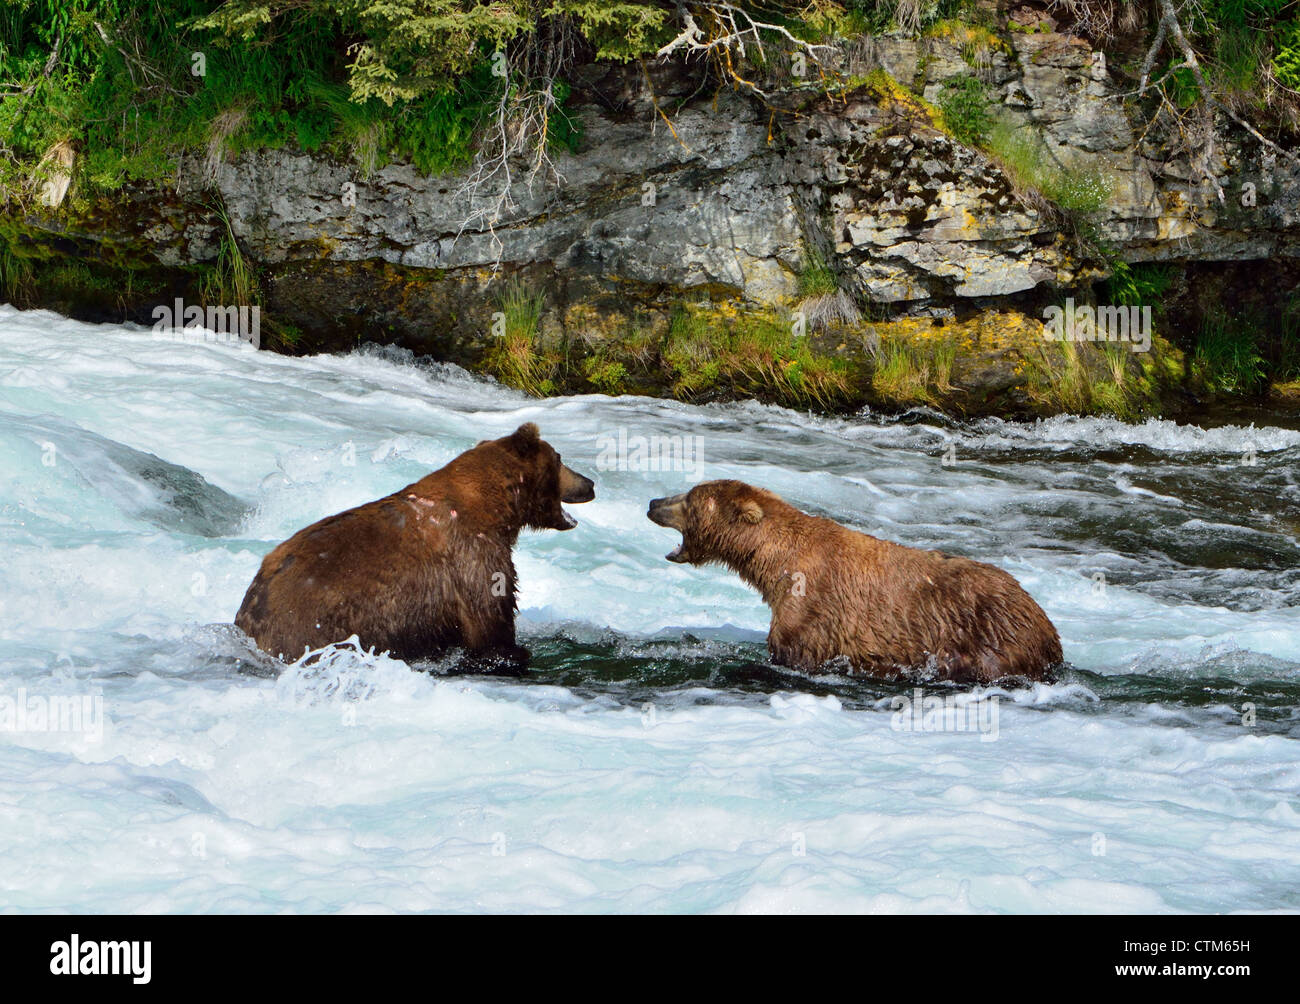 Two brown bears confront each other at the Brooks Falls. Katmai National Park and Preserve. Alaska, USA. - Stock Image